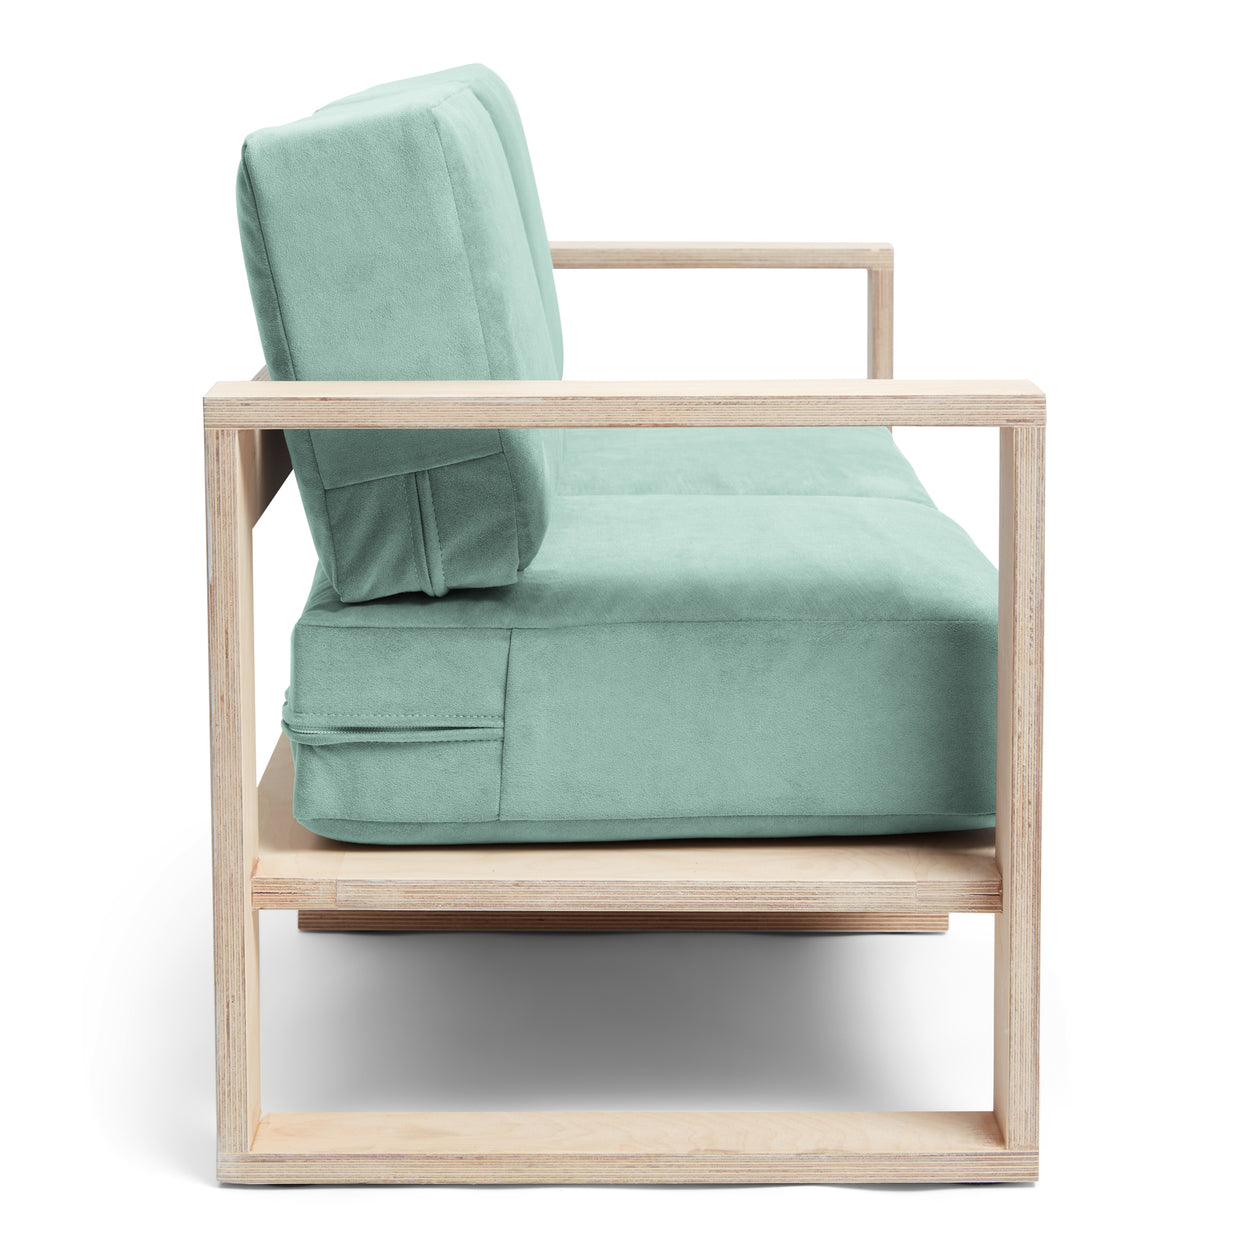 Two-Seater Sofa